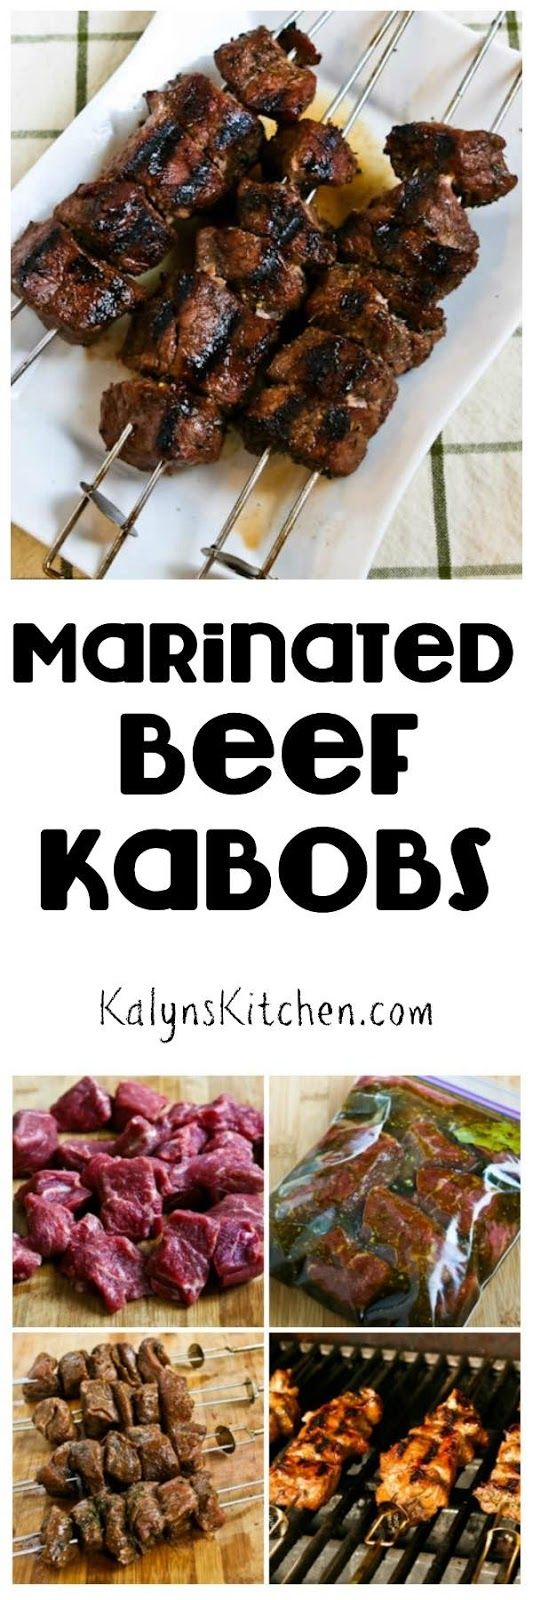 Marinated Beef Kabobs found on KalynsKitchen.com